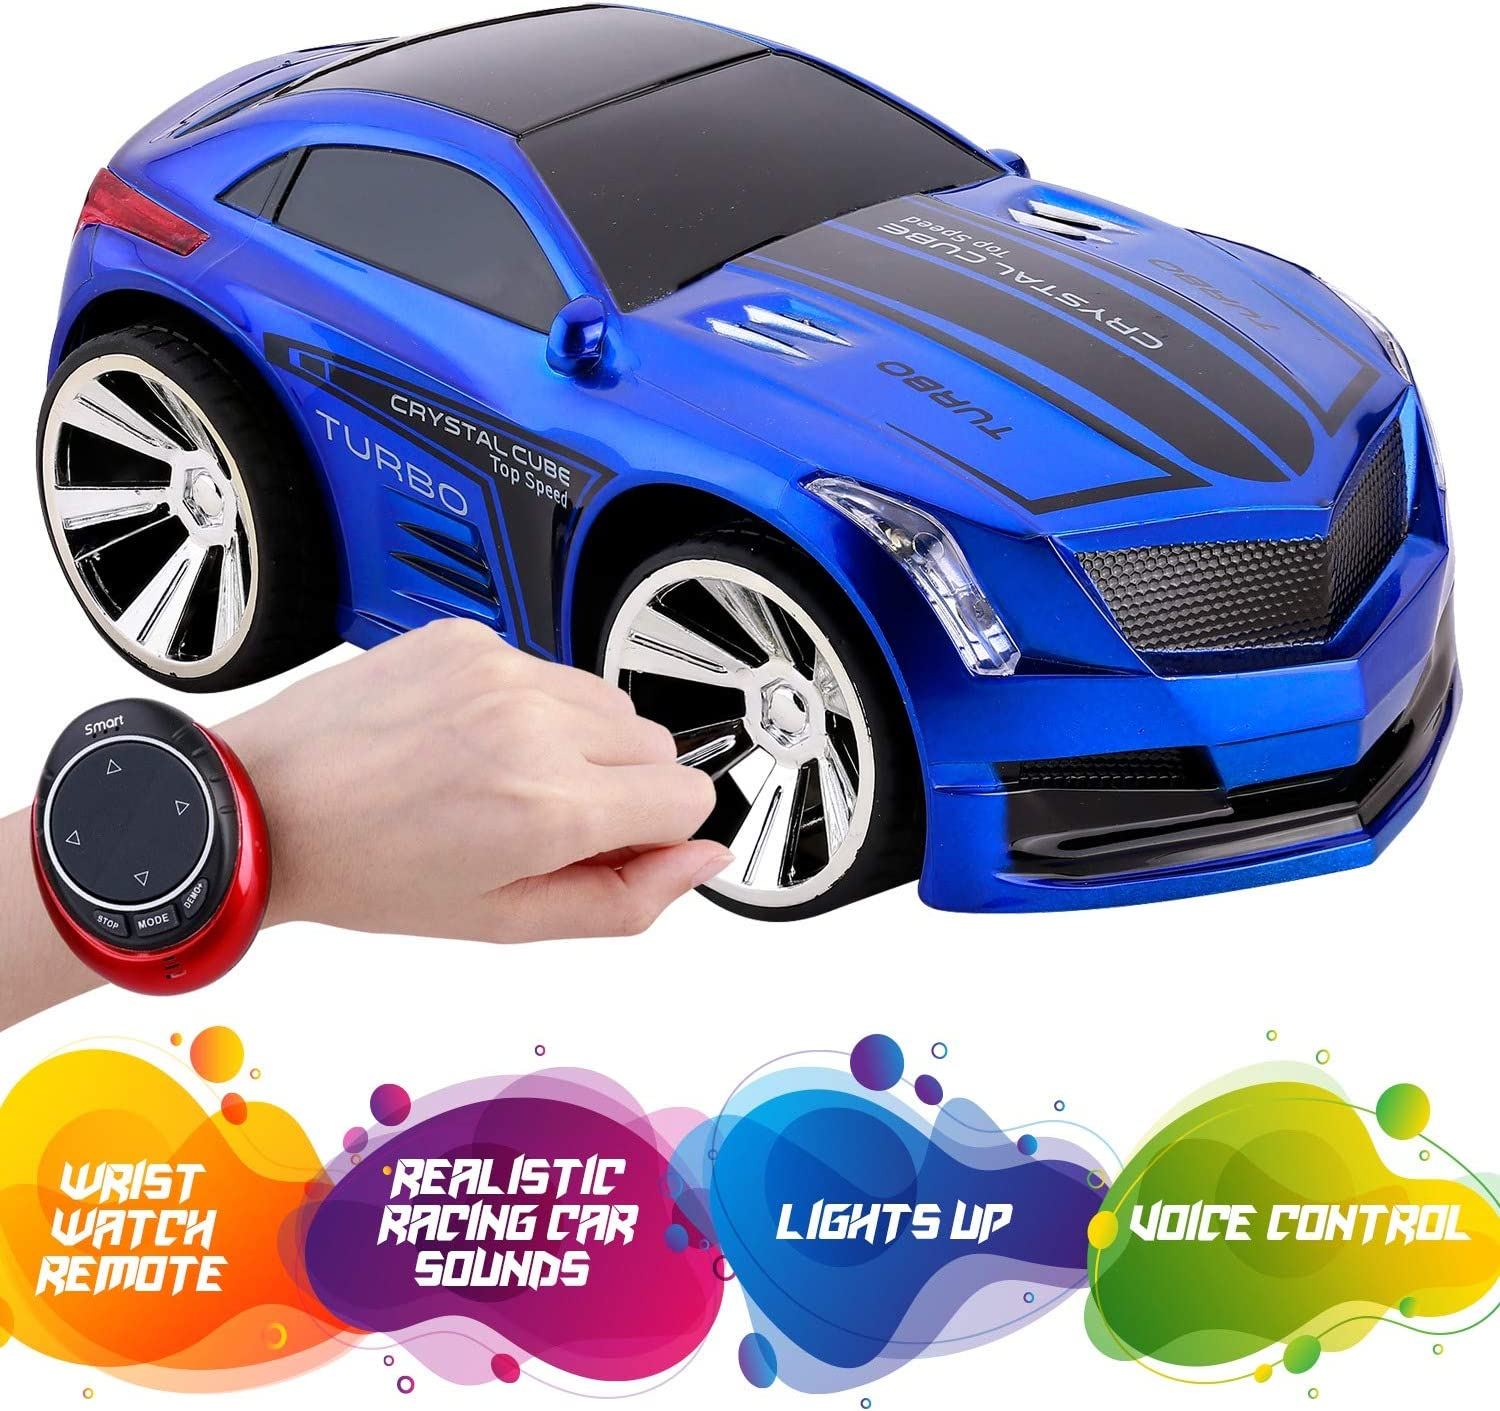 Remote Control Car with Voice Activation - Hand and Voice Activated Wrist RC Smart Watch - Rechargeable Race Car with USB Cable for Kids - Super Action Light Effects